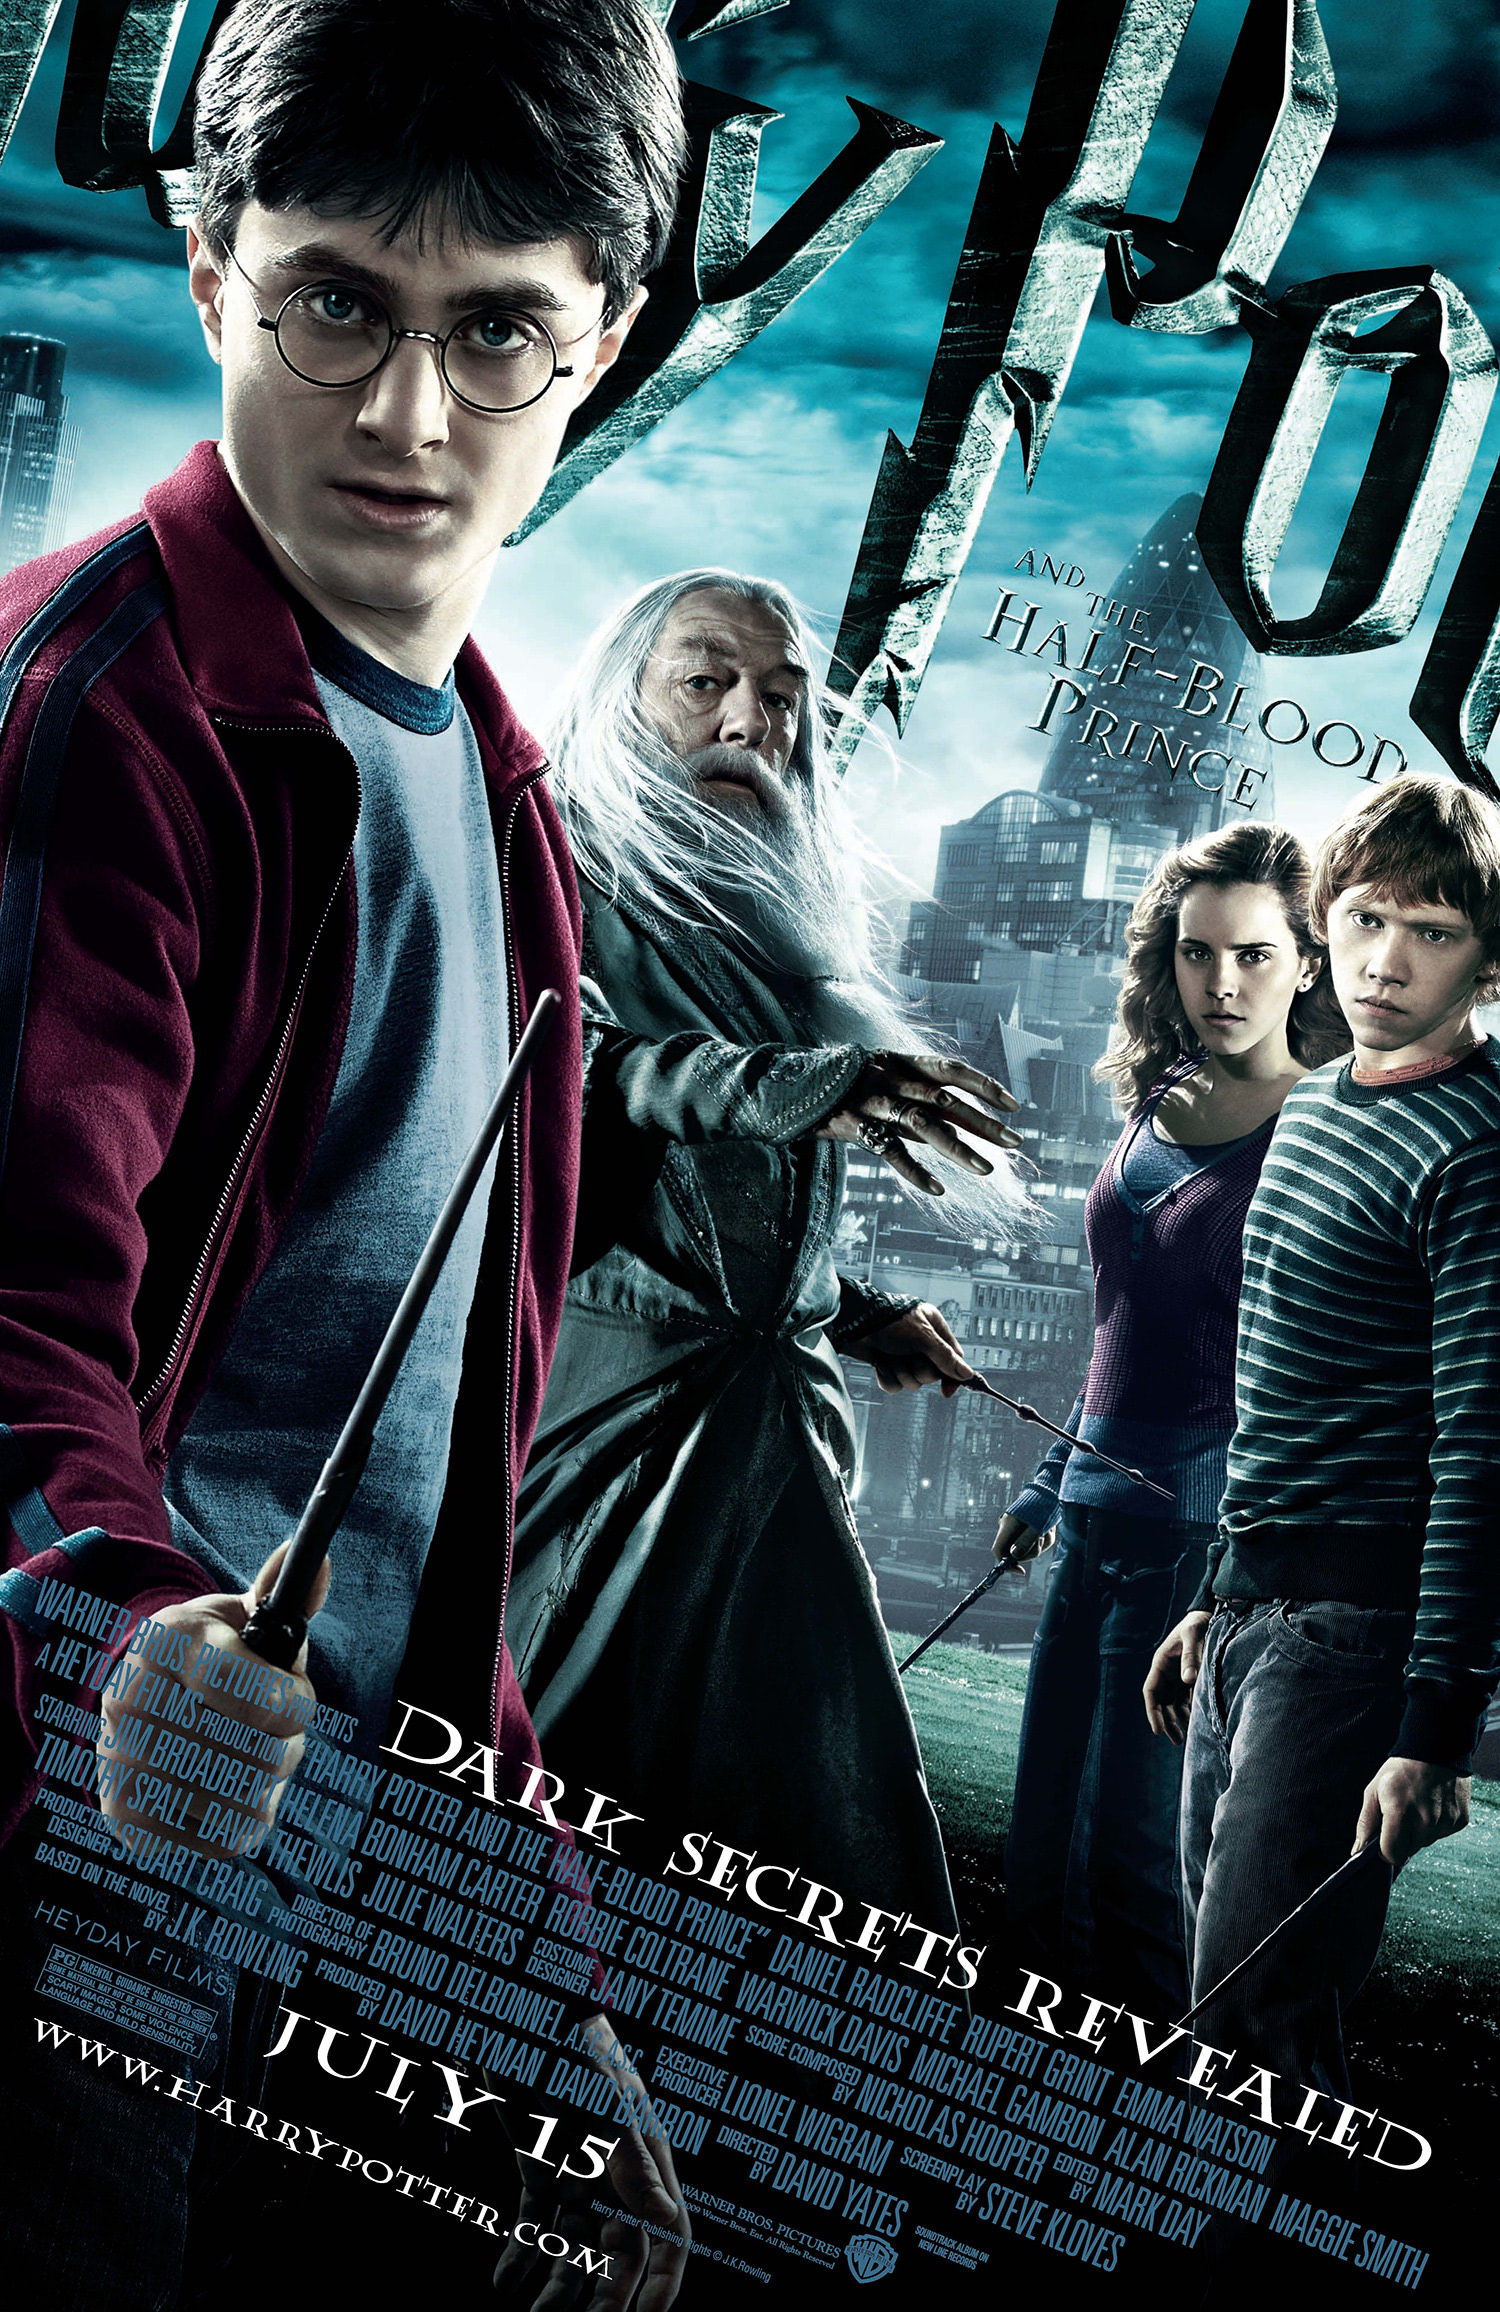 'Half-Blood Prince' theatrical poster